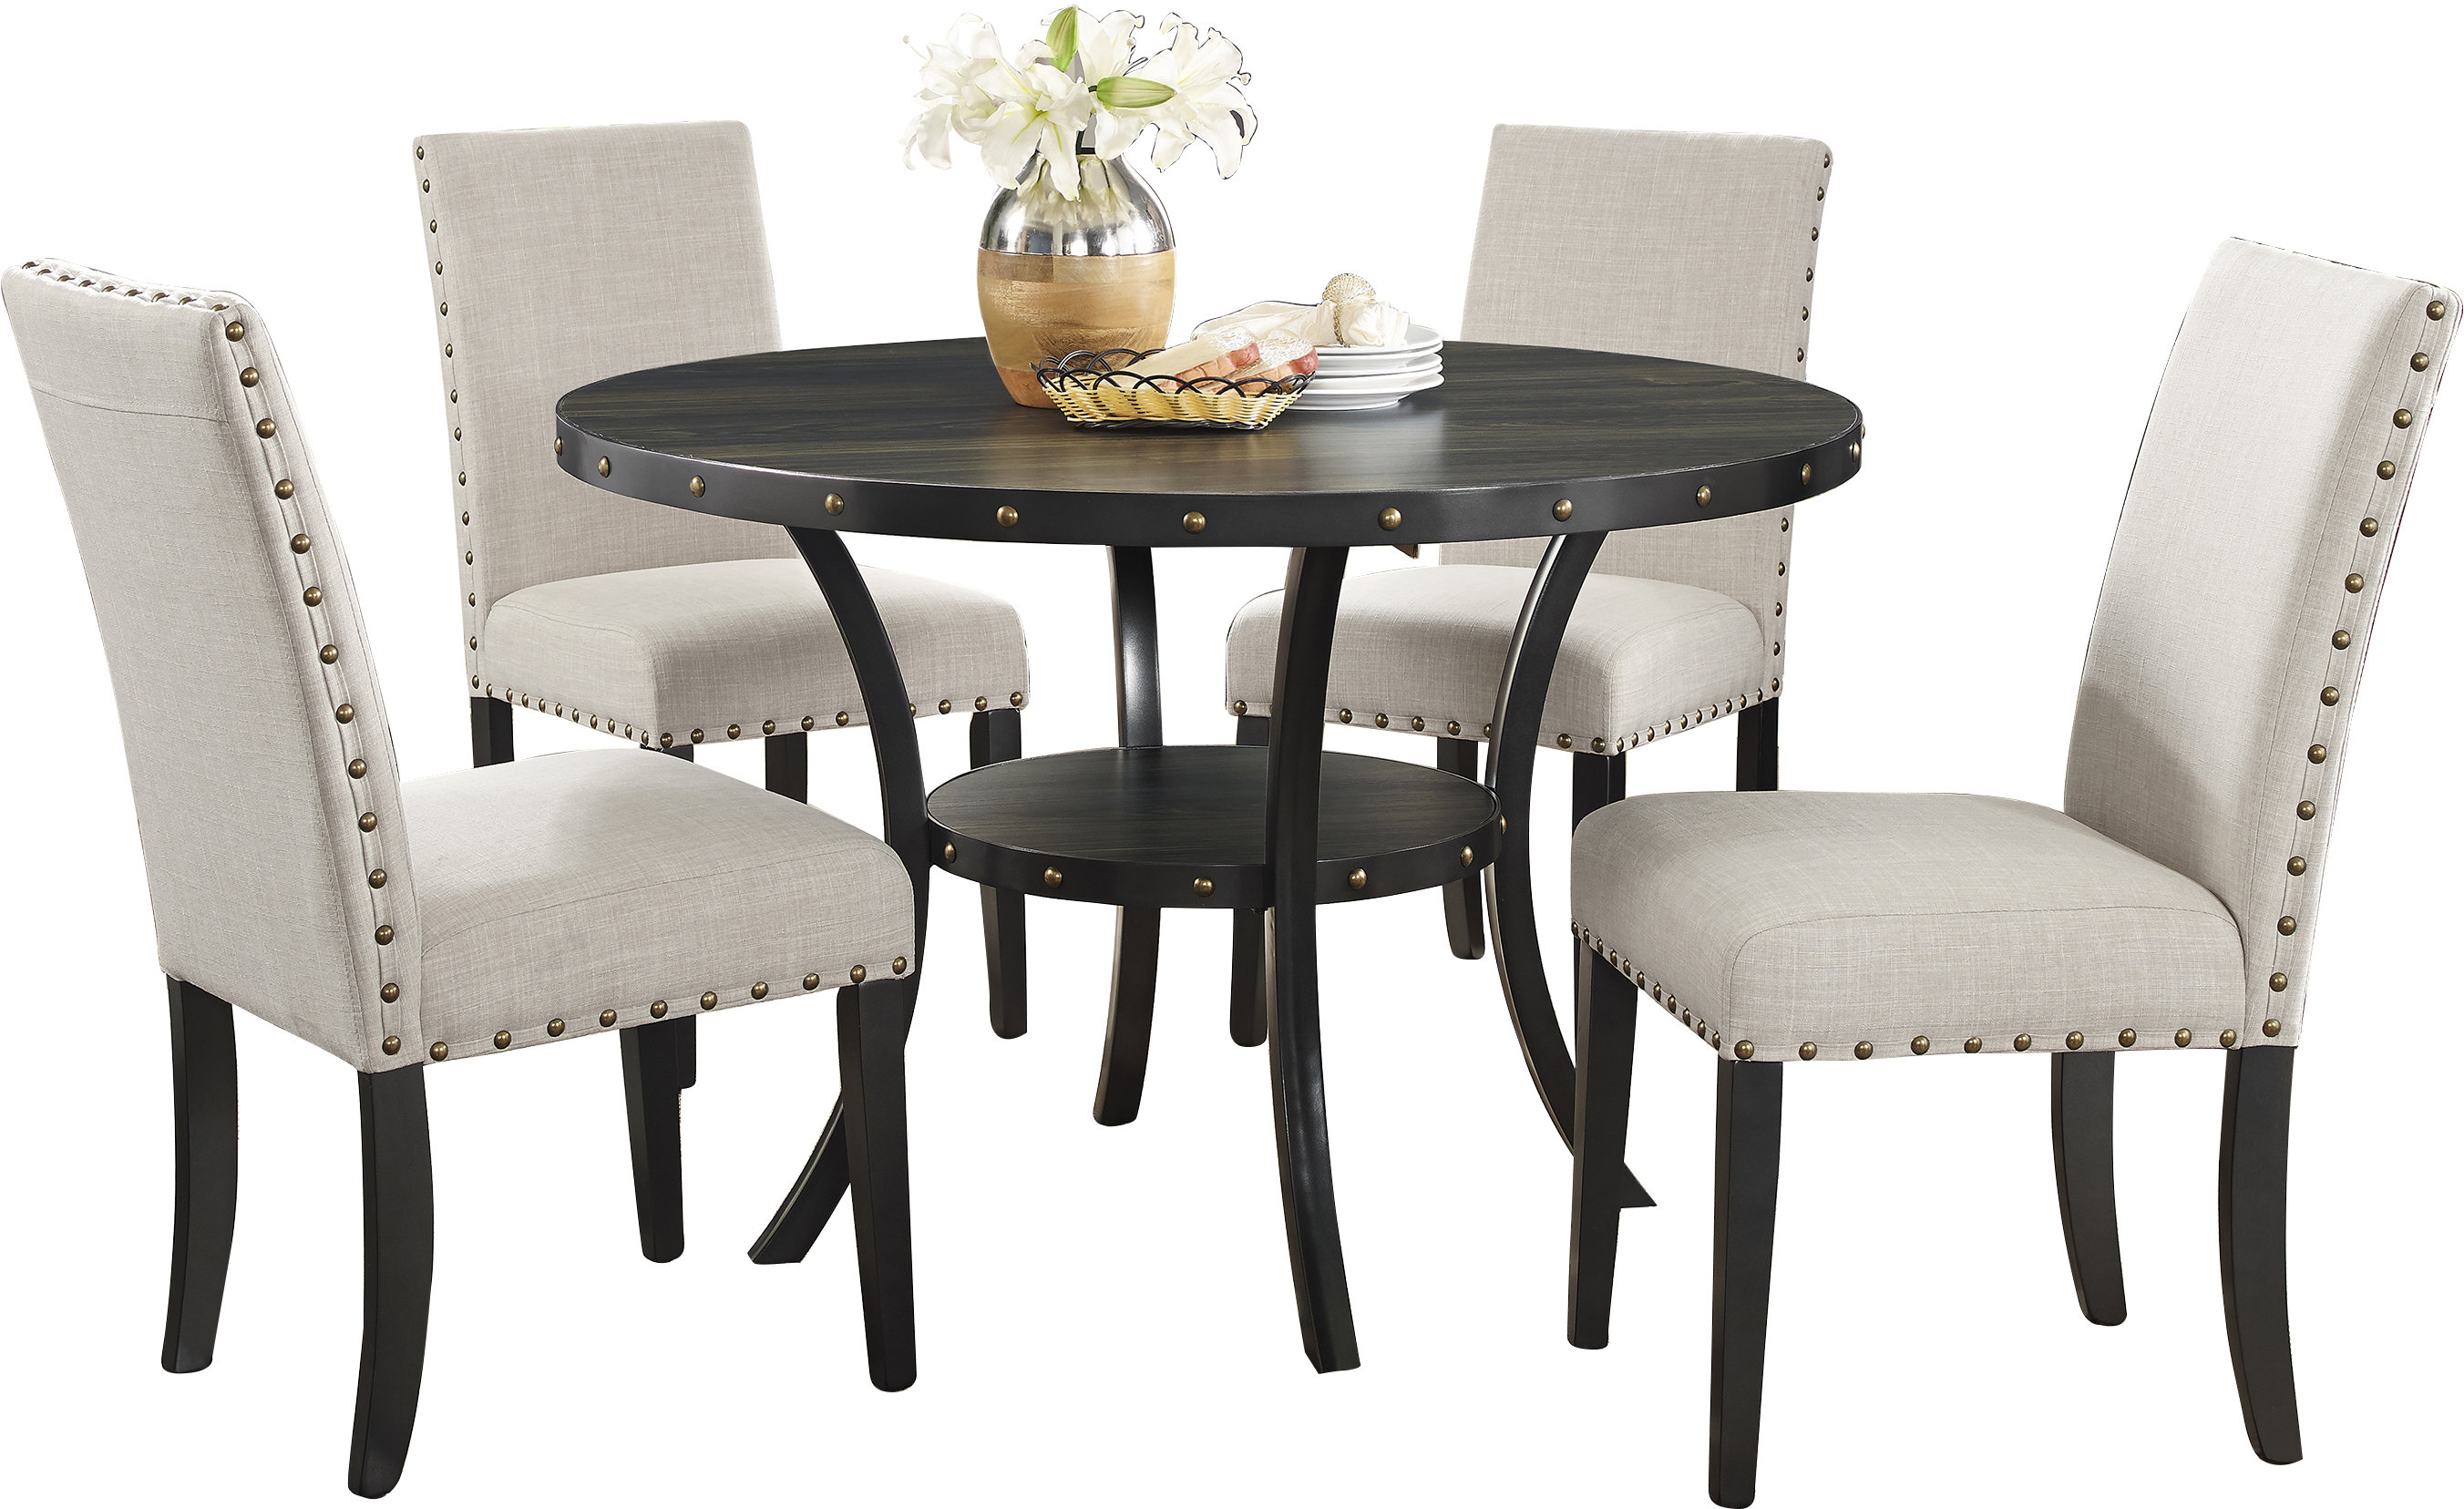 Pattonsburg 5 Piece Dining Sets Inside Most Popular Amy 5 Piece Dining Set (View 12 of 25)